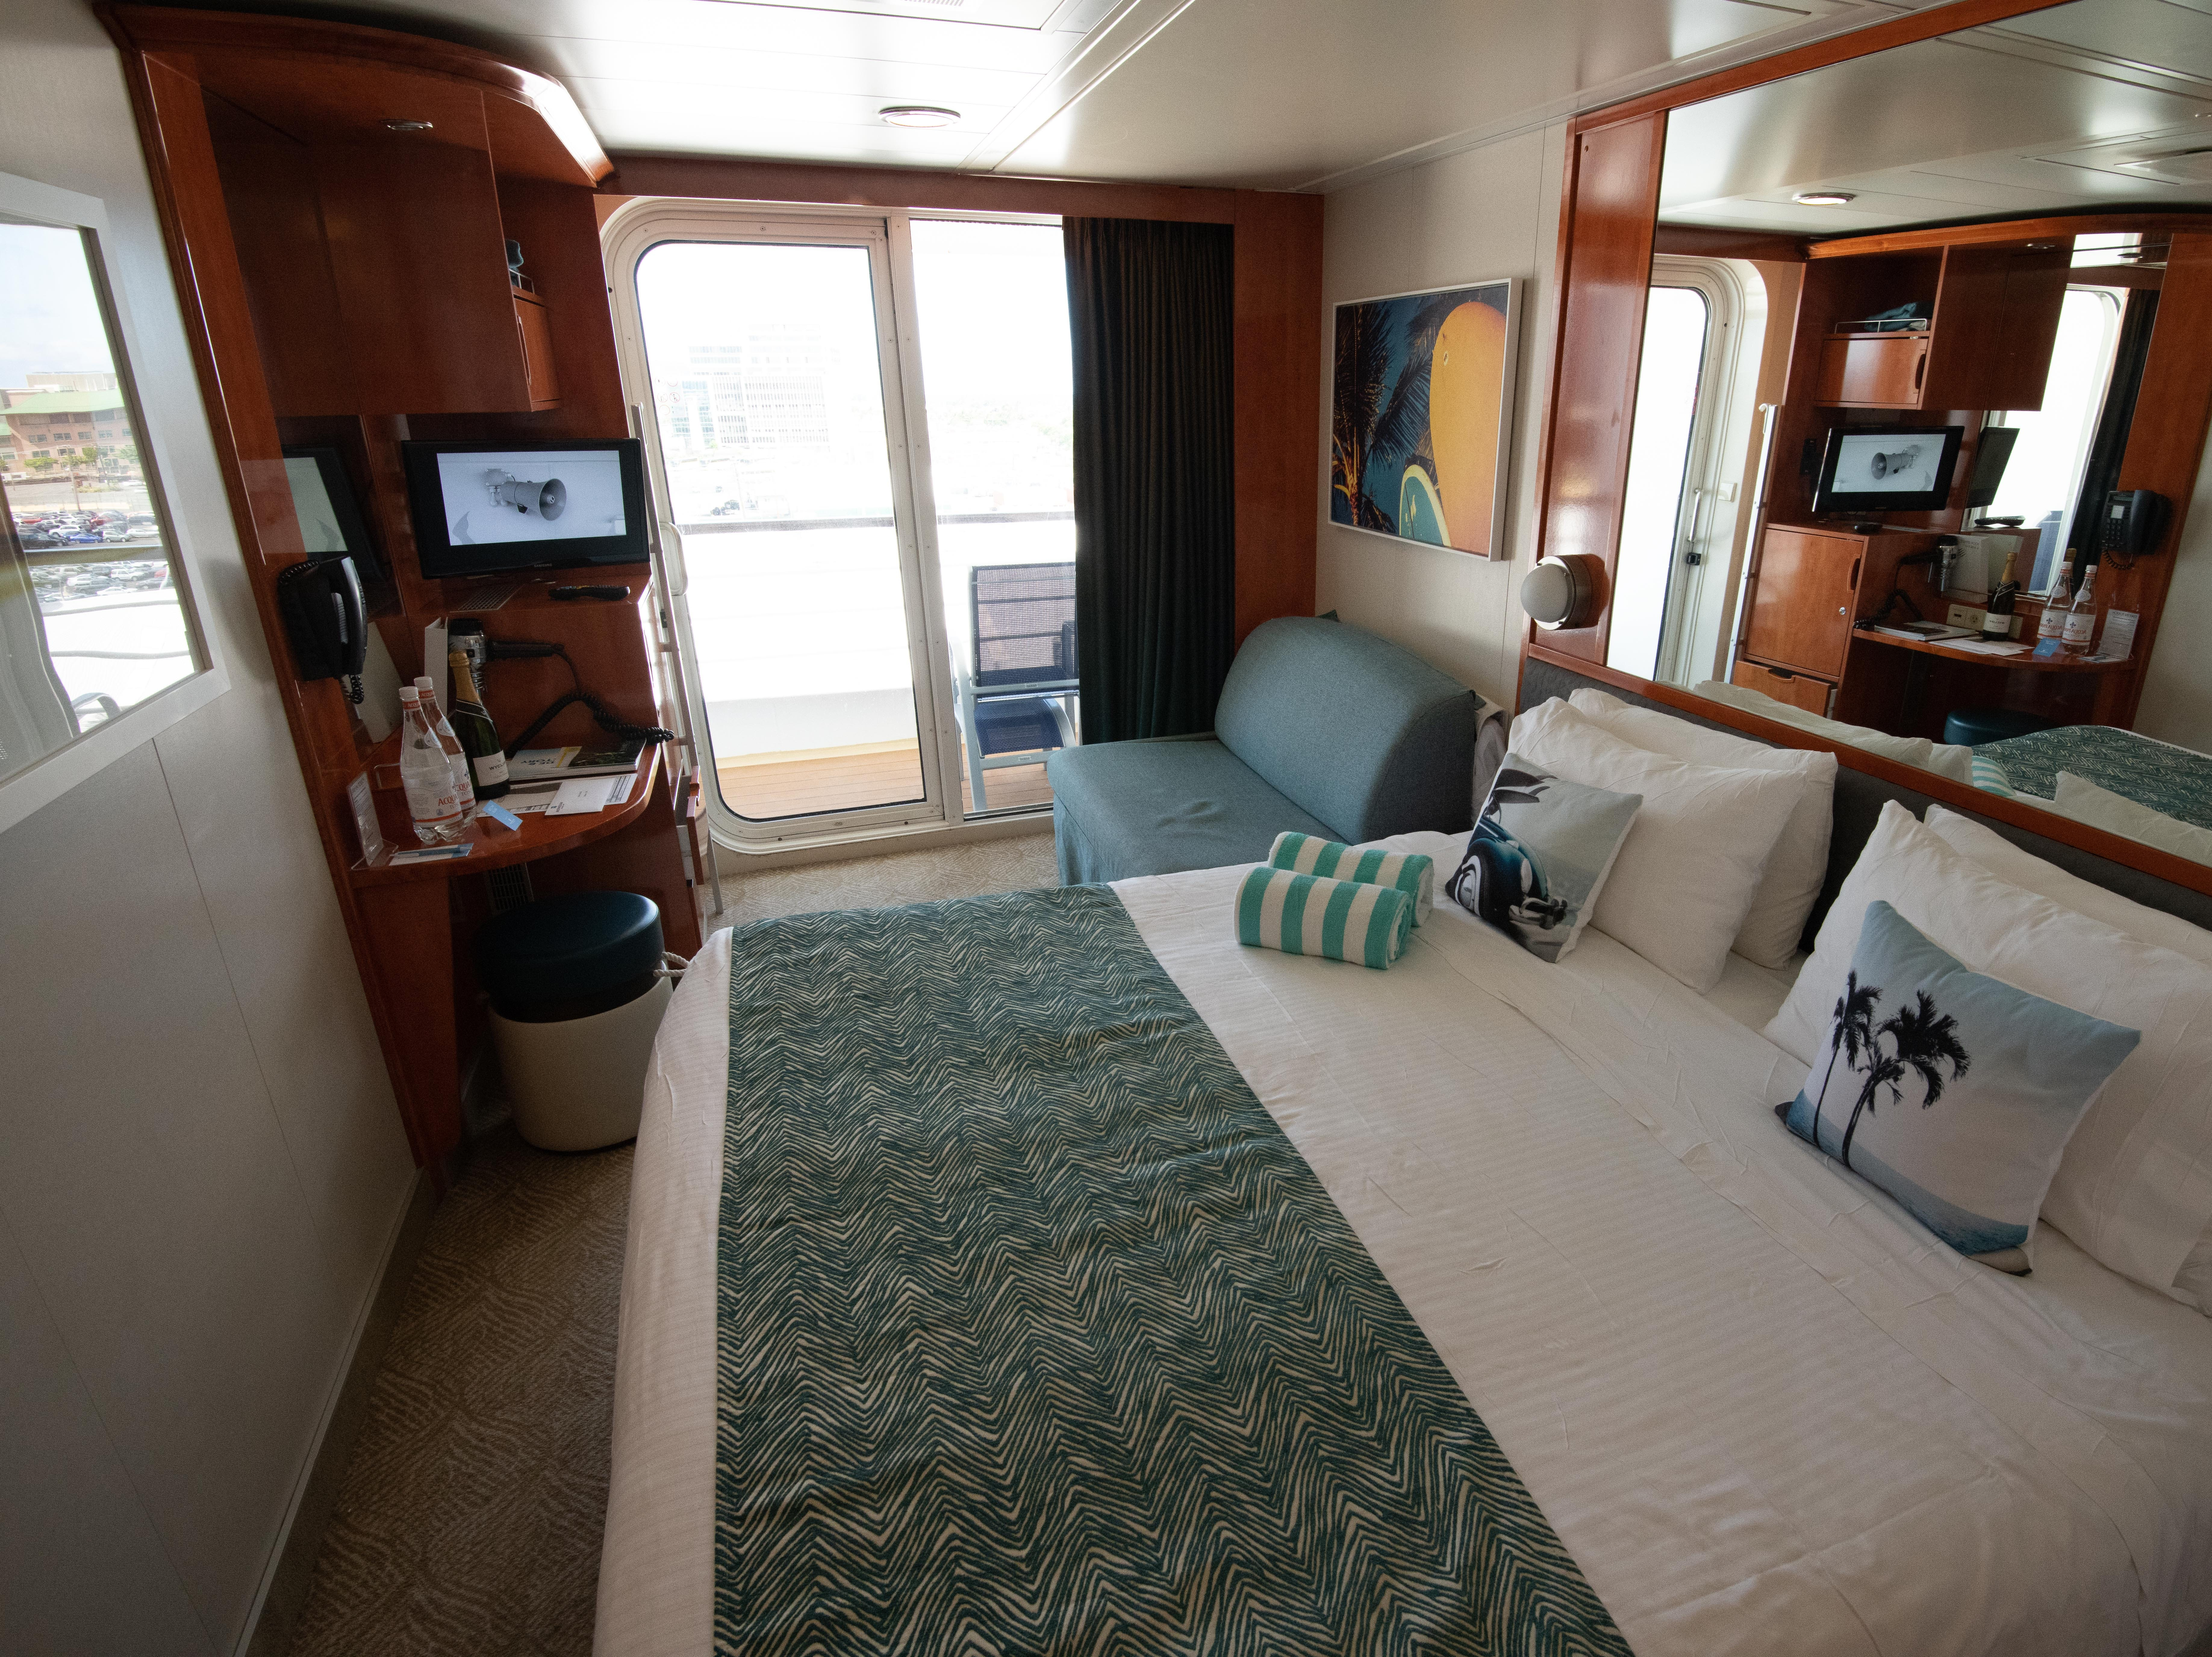 """Pride of America has 1,096 cabins, more than half of which are balcony cabins such as the room shown here. The ship has 613 balcony cabins, 178 ocean-view cabins and 224 windowless """"inside"""" cabins. There also are 77 suites and four studio cabins for singles."""